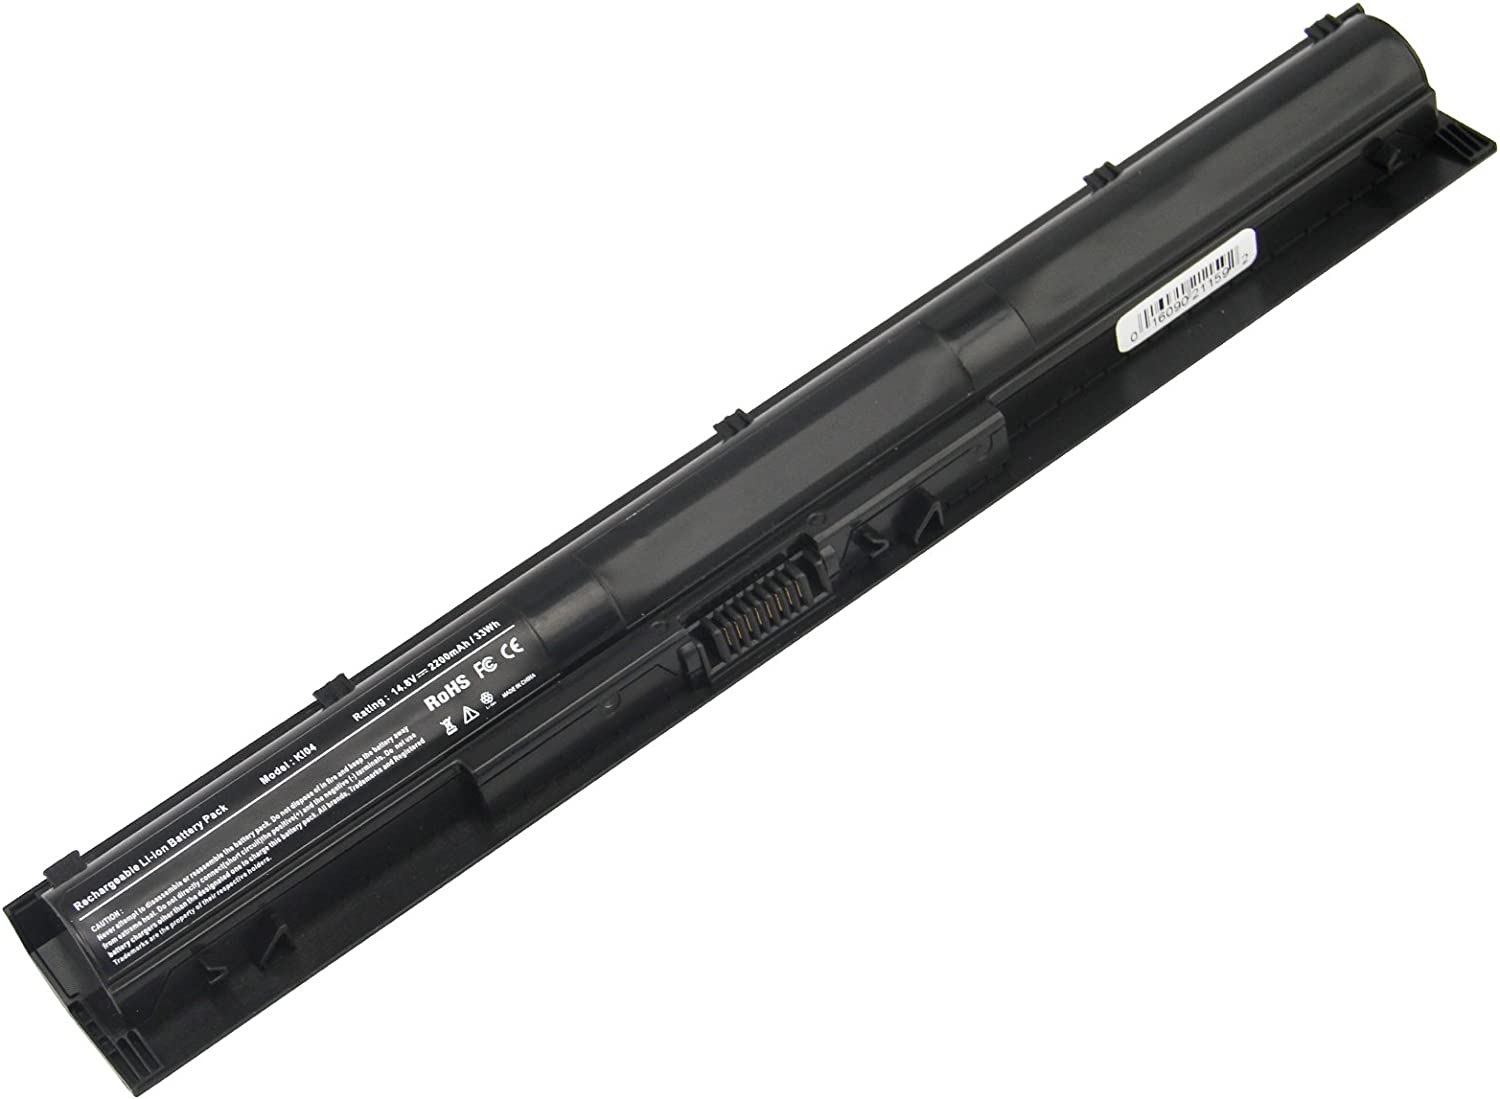 Futurebatt Laptop Battery KI04 for HP Pavilion 14-ab000 Series HP Pavilion 15-ab000 Series HP Pavilion 17-g000 Series, HP HSTNN-LB6S/DB6T 800049-001 TPN-Q158 Q159 Q160 Q161 Q162